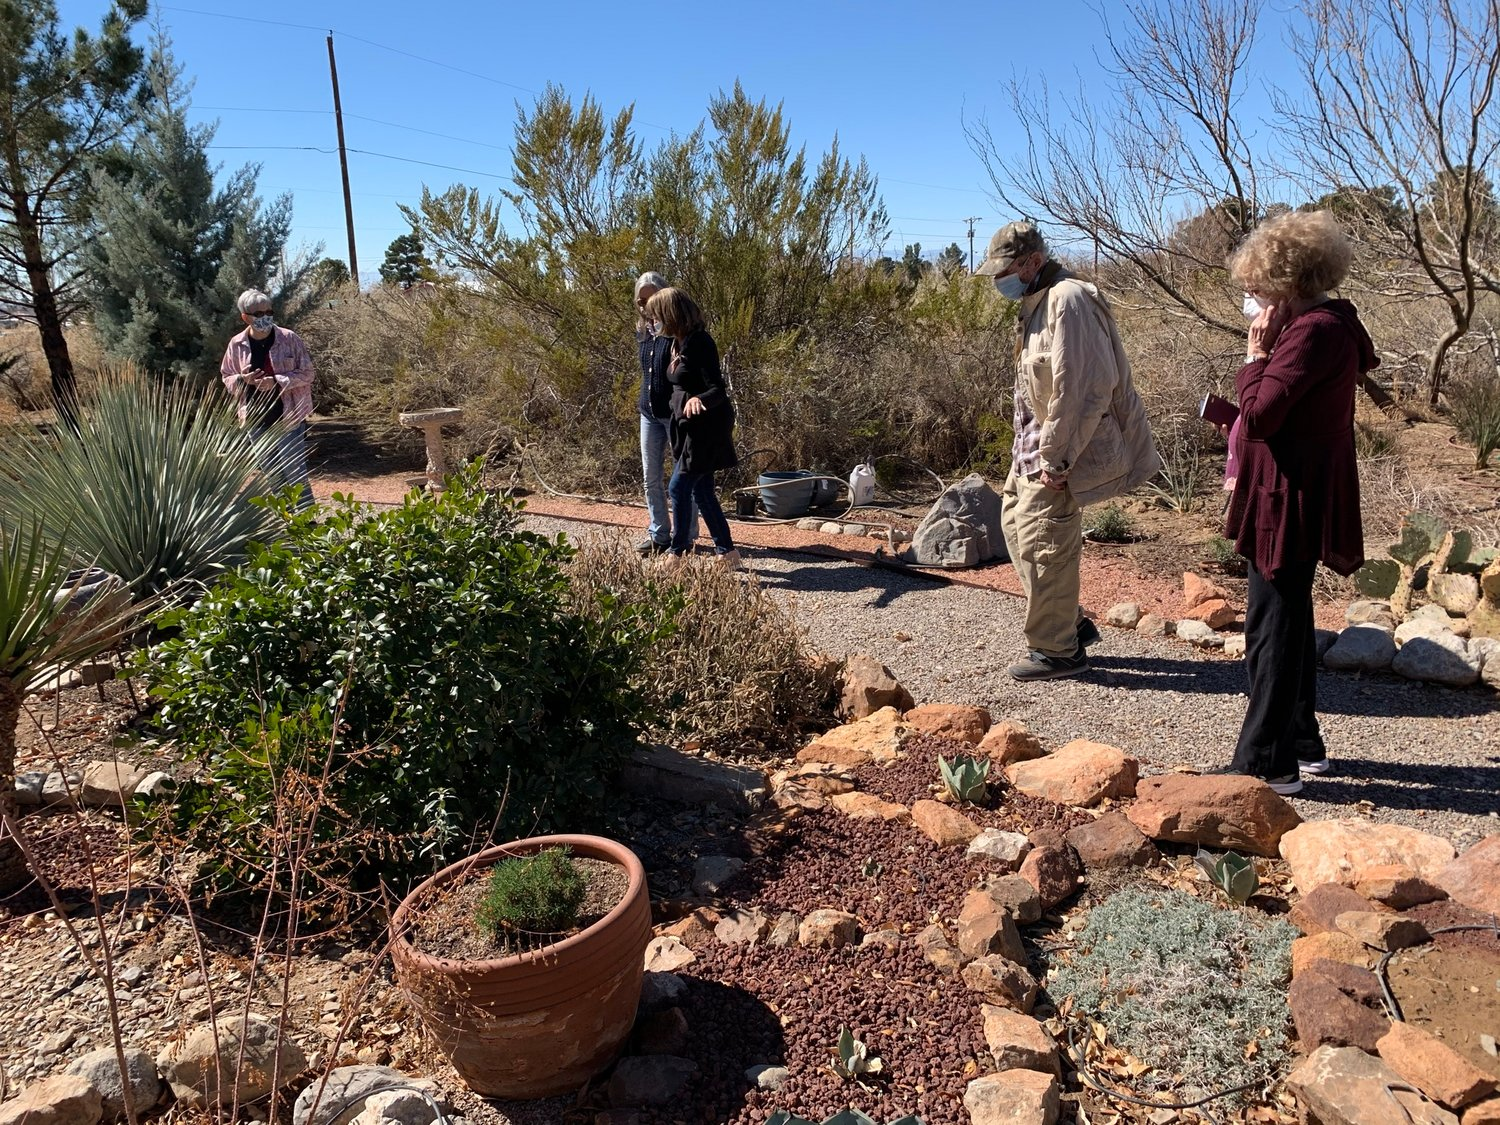 LeAnne Roberts will talk about her experiences developing her Alamogordo native plant garden on April 10.